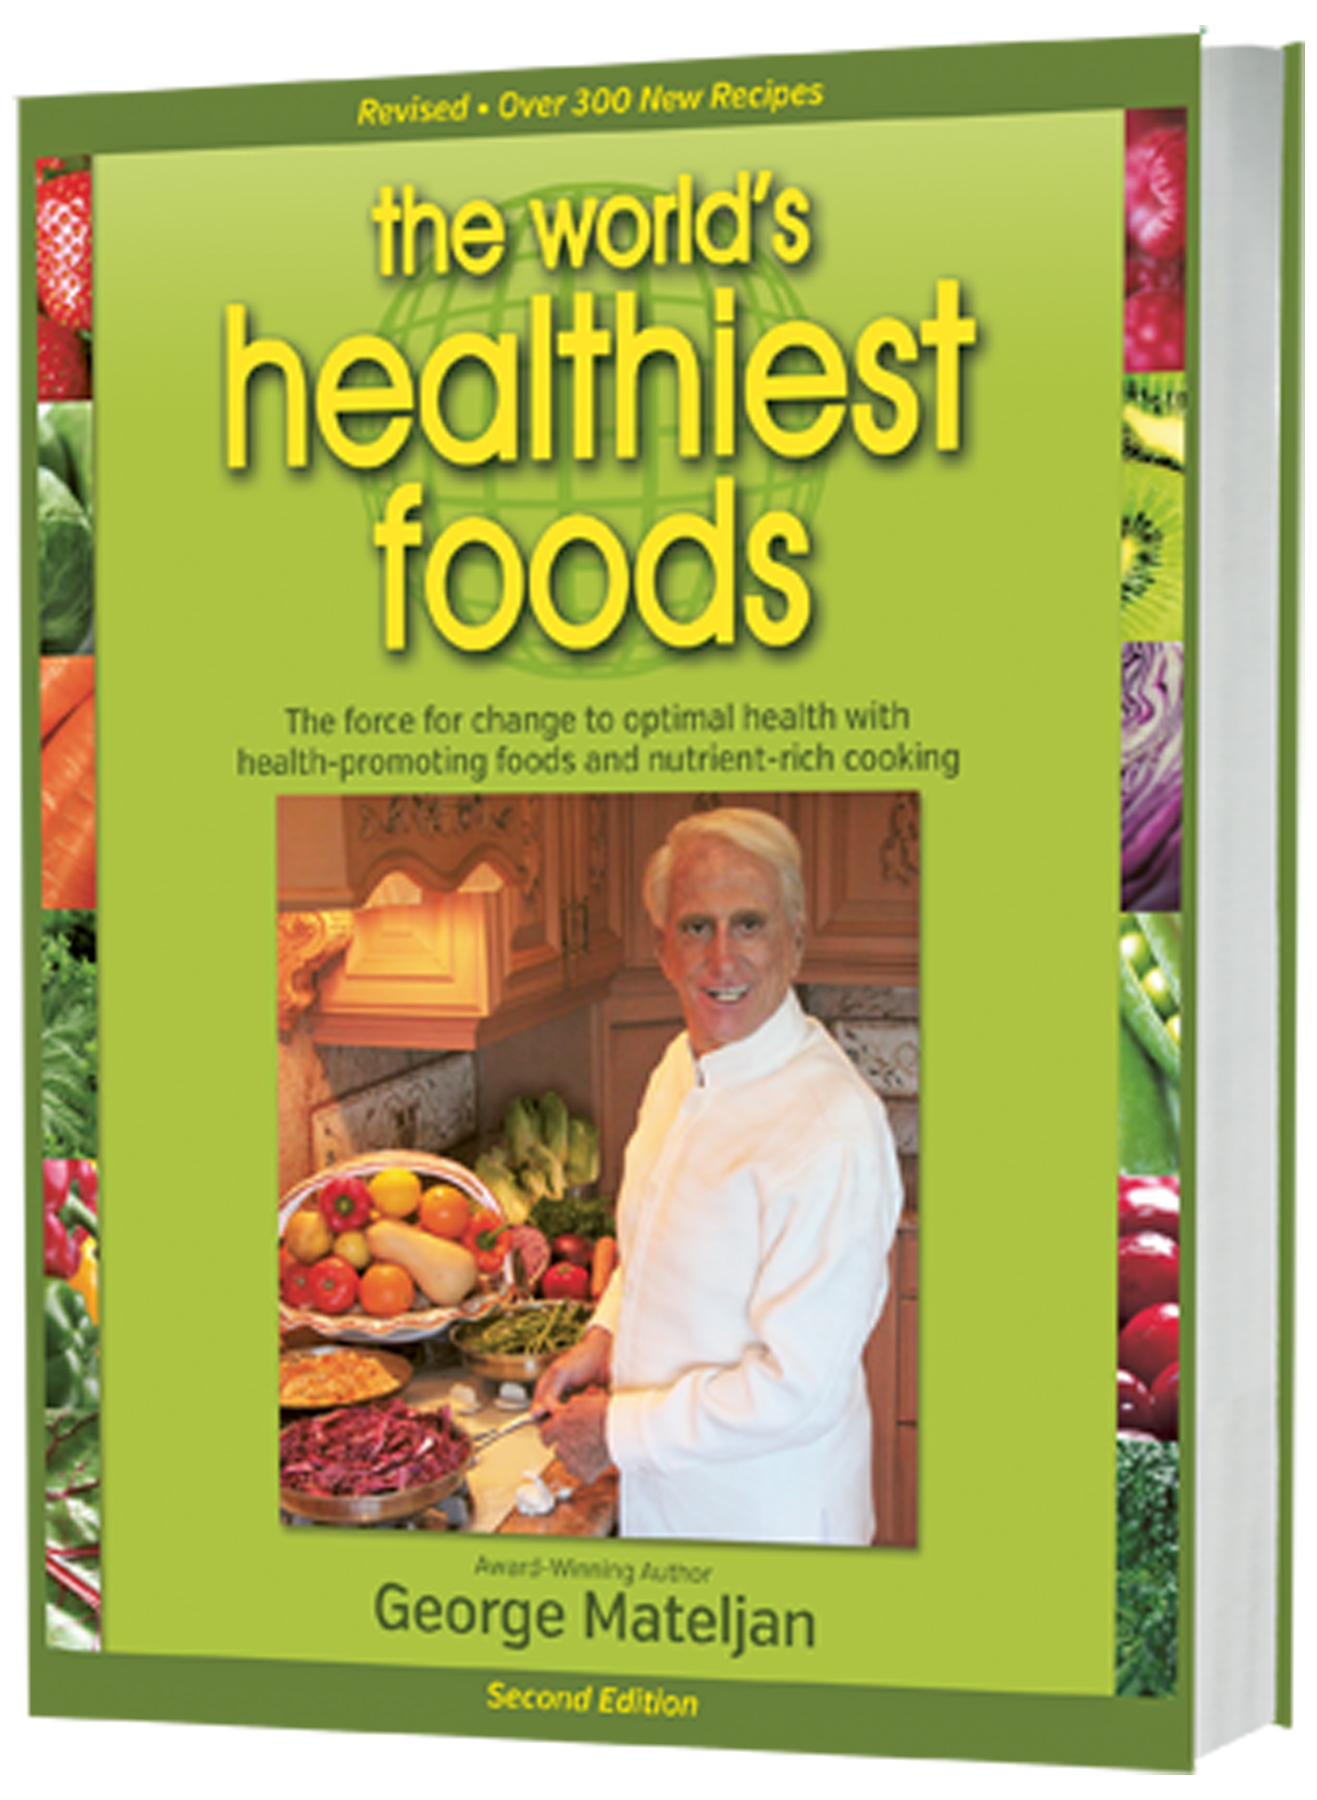 Ethnic Cuisine Book Novel Ethnic Food Eats In The Worlds Healthiest Foods